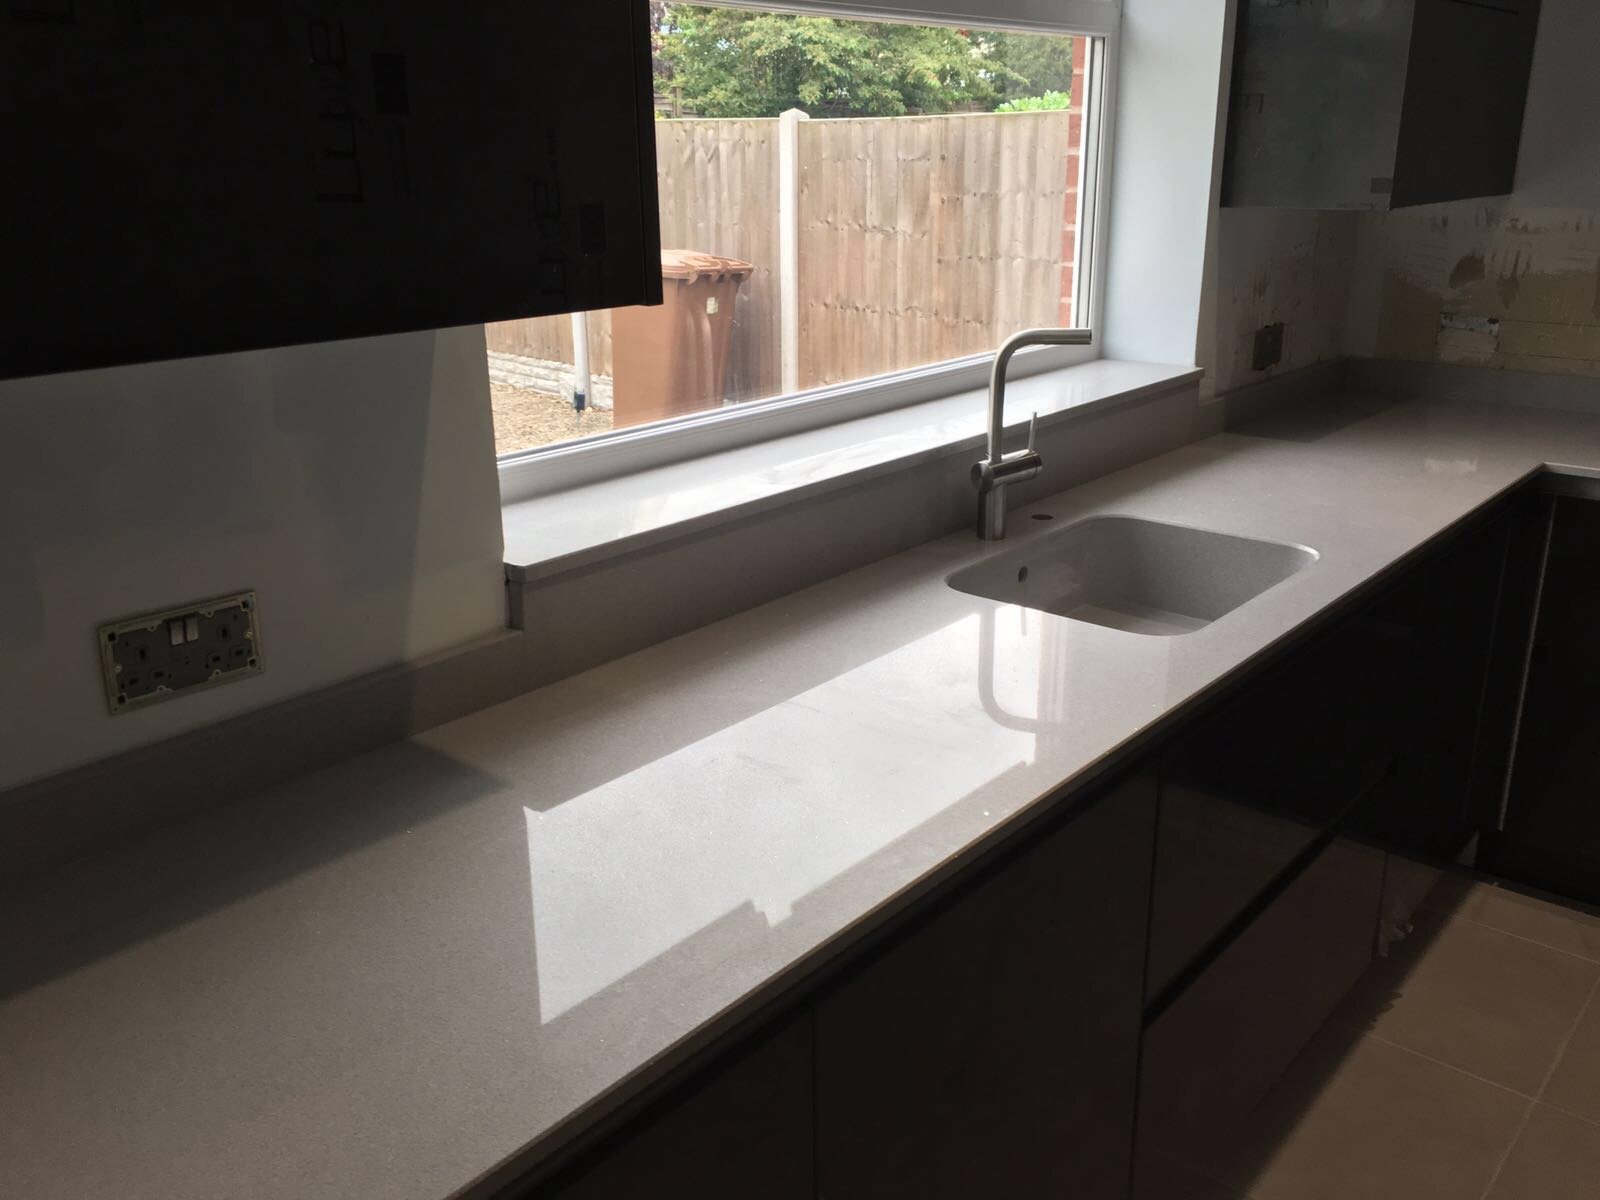 Silestone integrity sink with recess drainer - Seamsetters Used By Our Installers